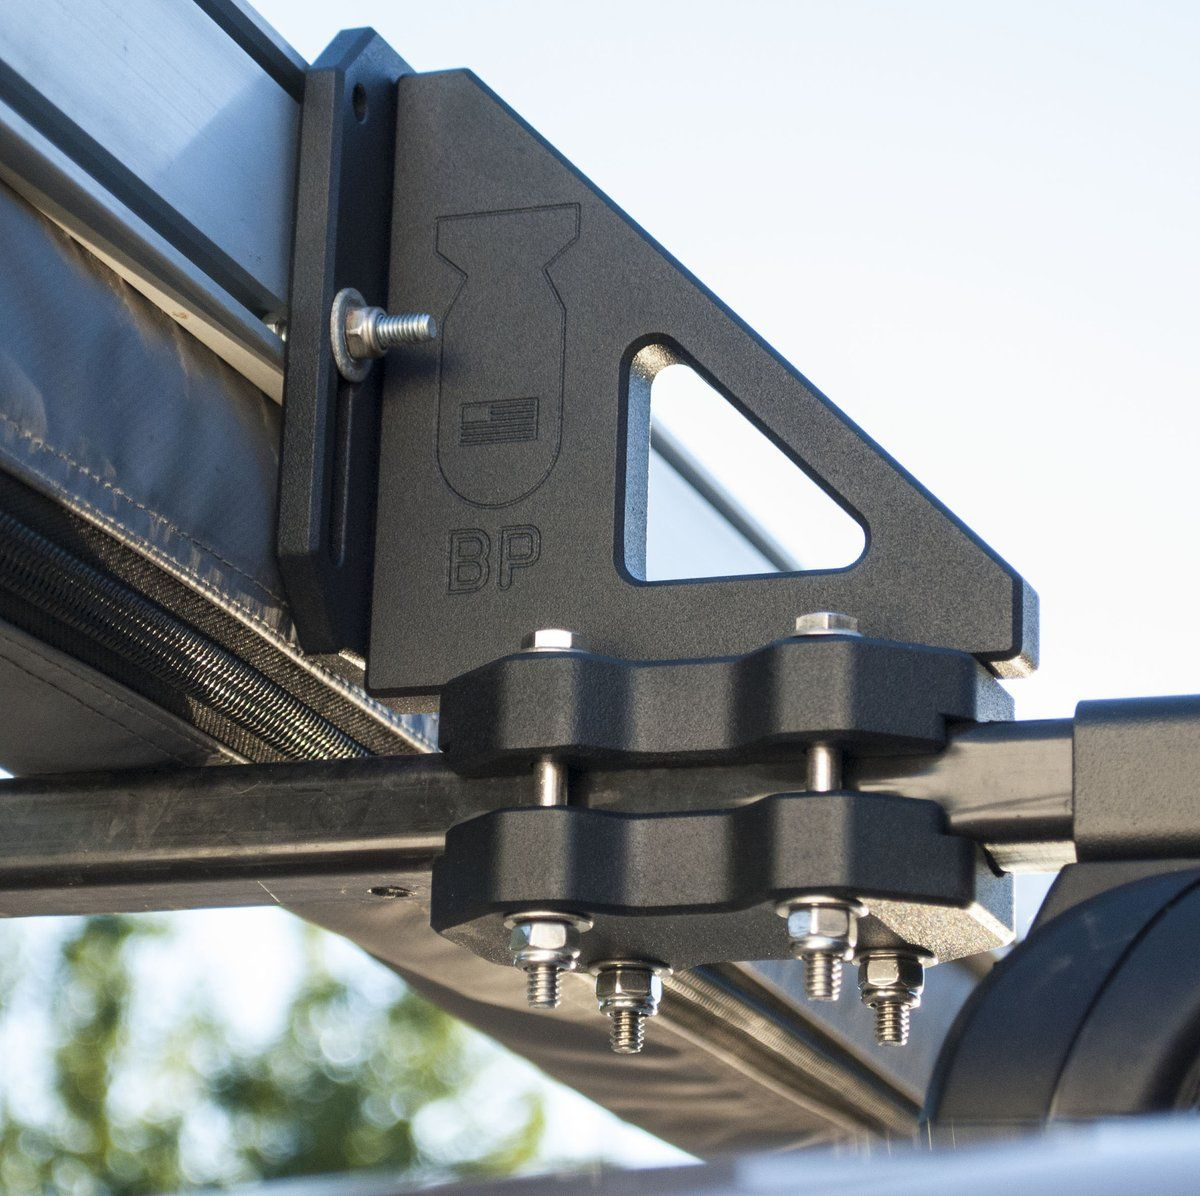 The Awn Lock Is The Awning Attachment Device For Standard Round And Rectangular Bar Roof Racks Made In The U S A L Roof Rack Roofing Equipment Towing Vehicle